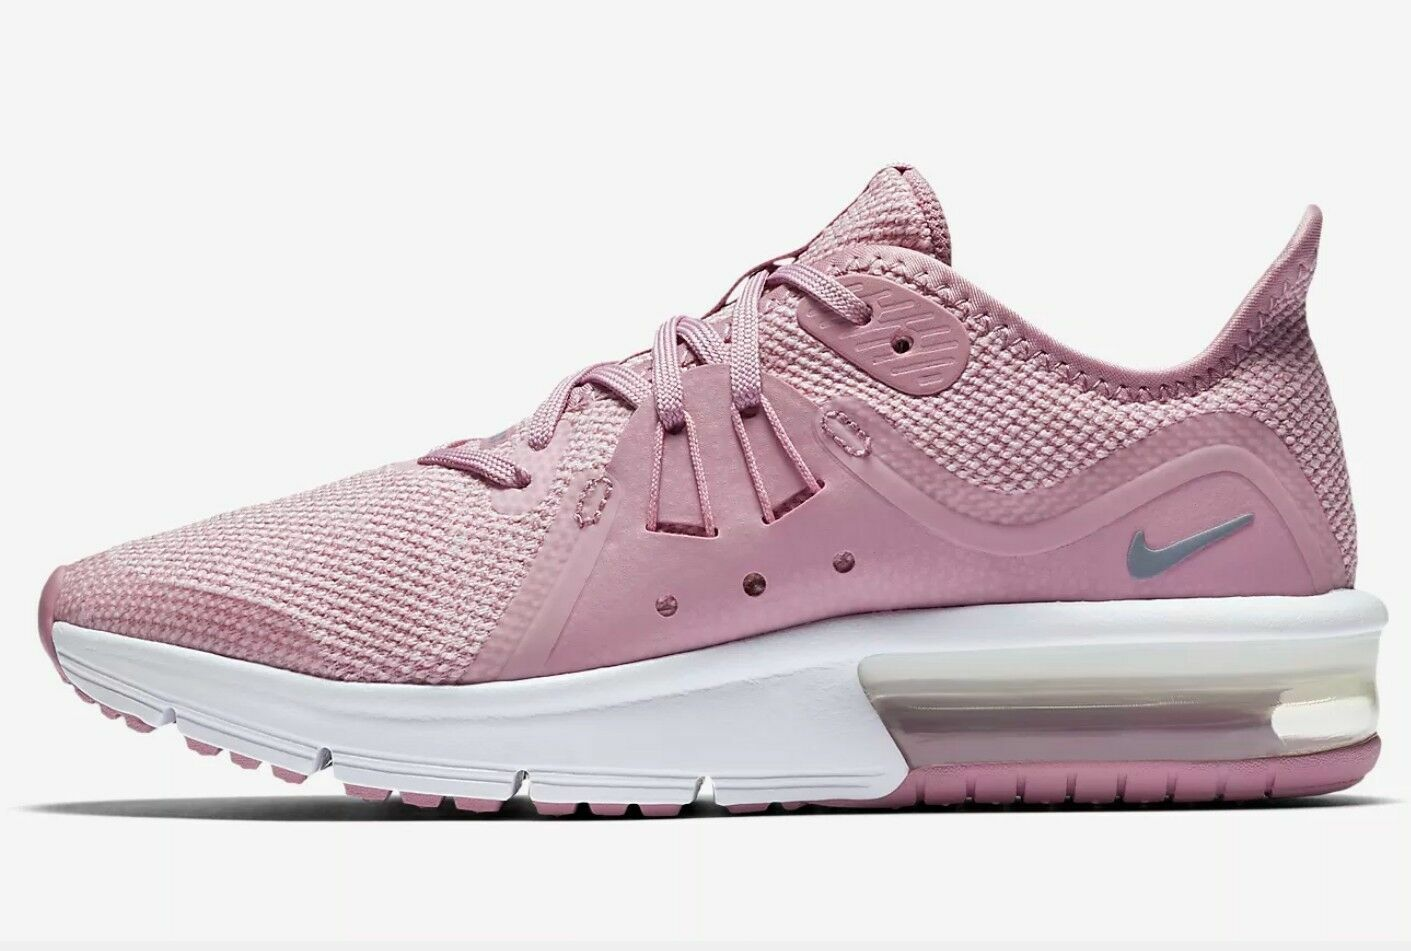 NIKE AIR MAX SEQUENT 3 (GS) for sale online